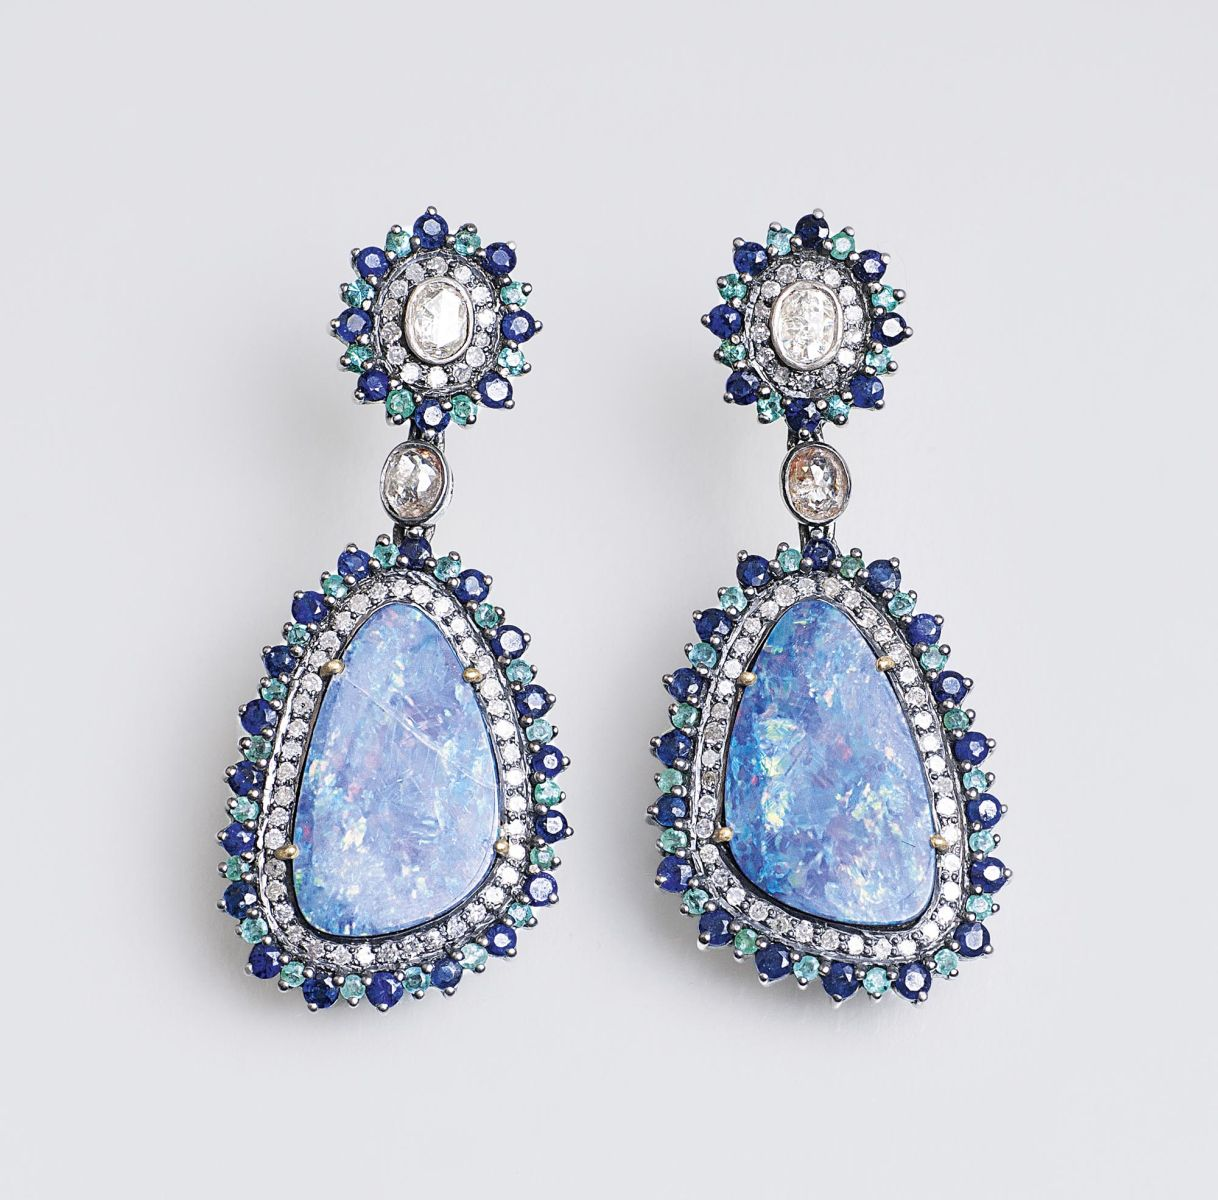 A Pair of Opal Diamond Earpendants with Emeralds and Sapphires